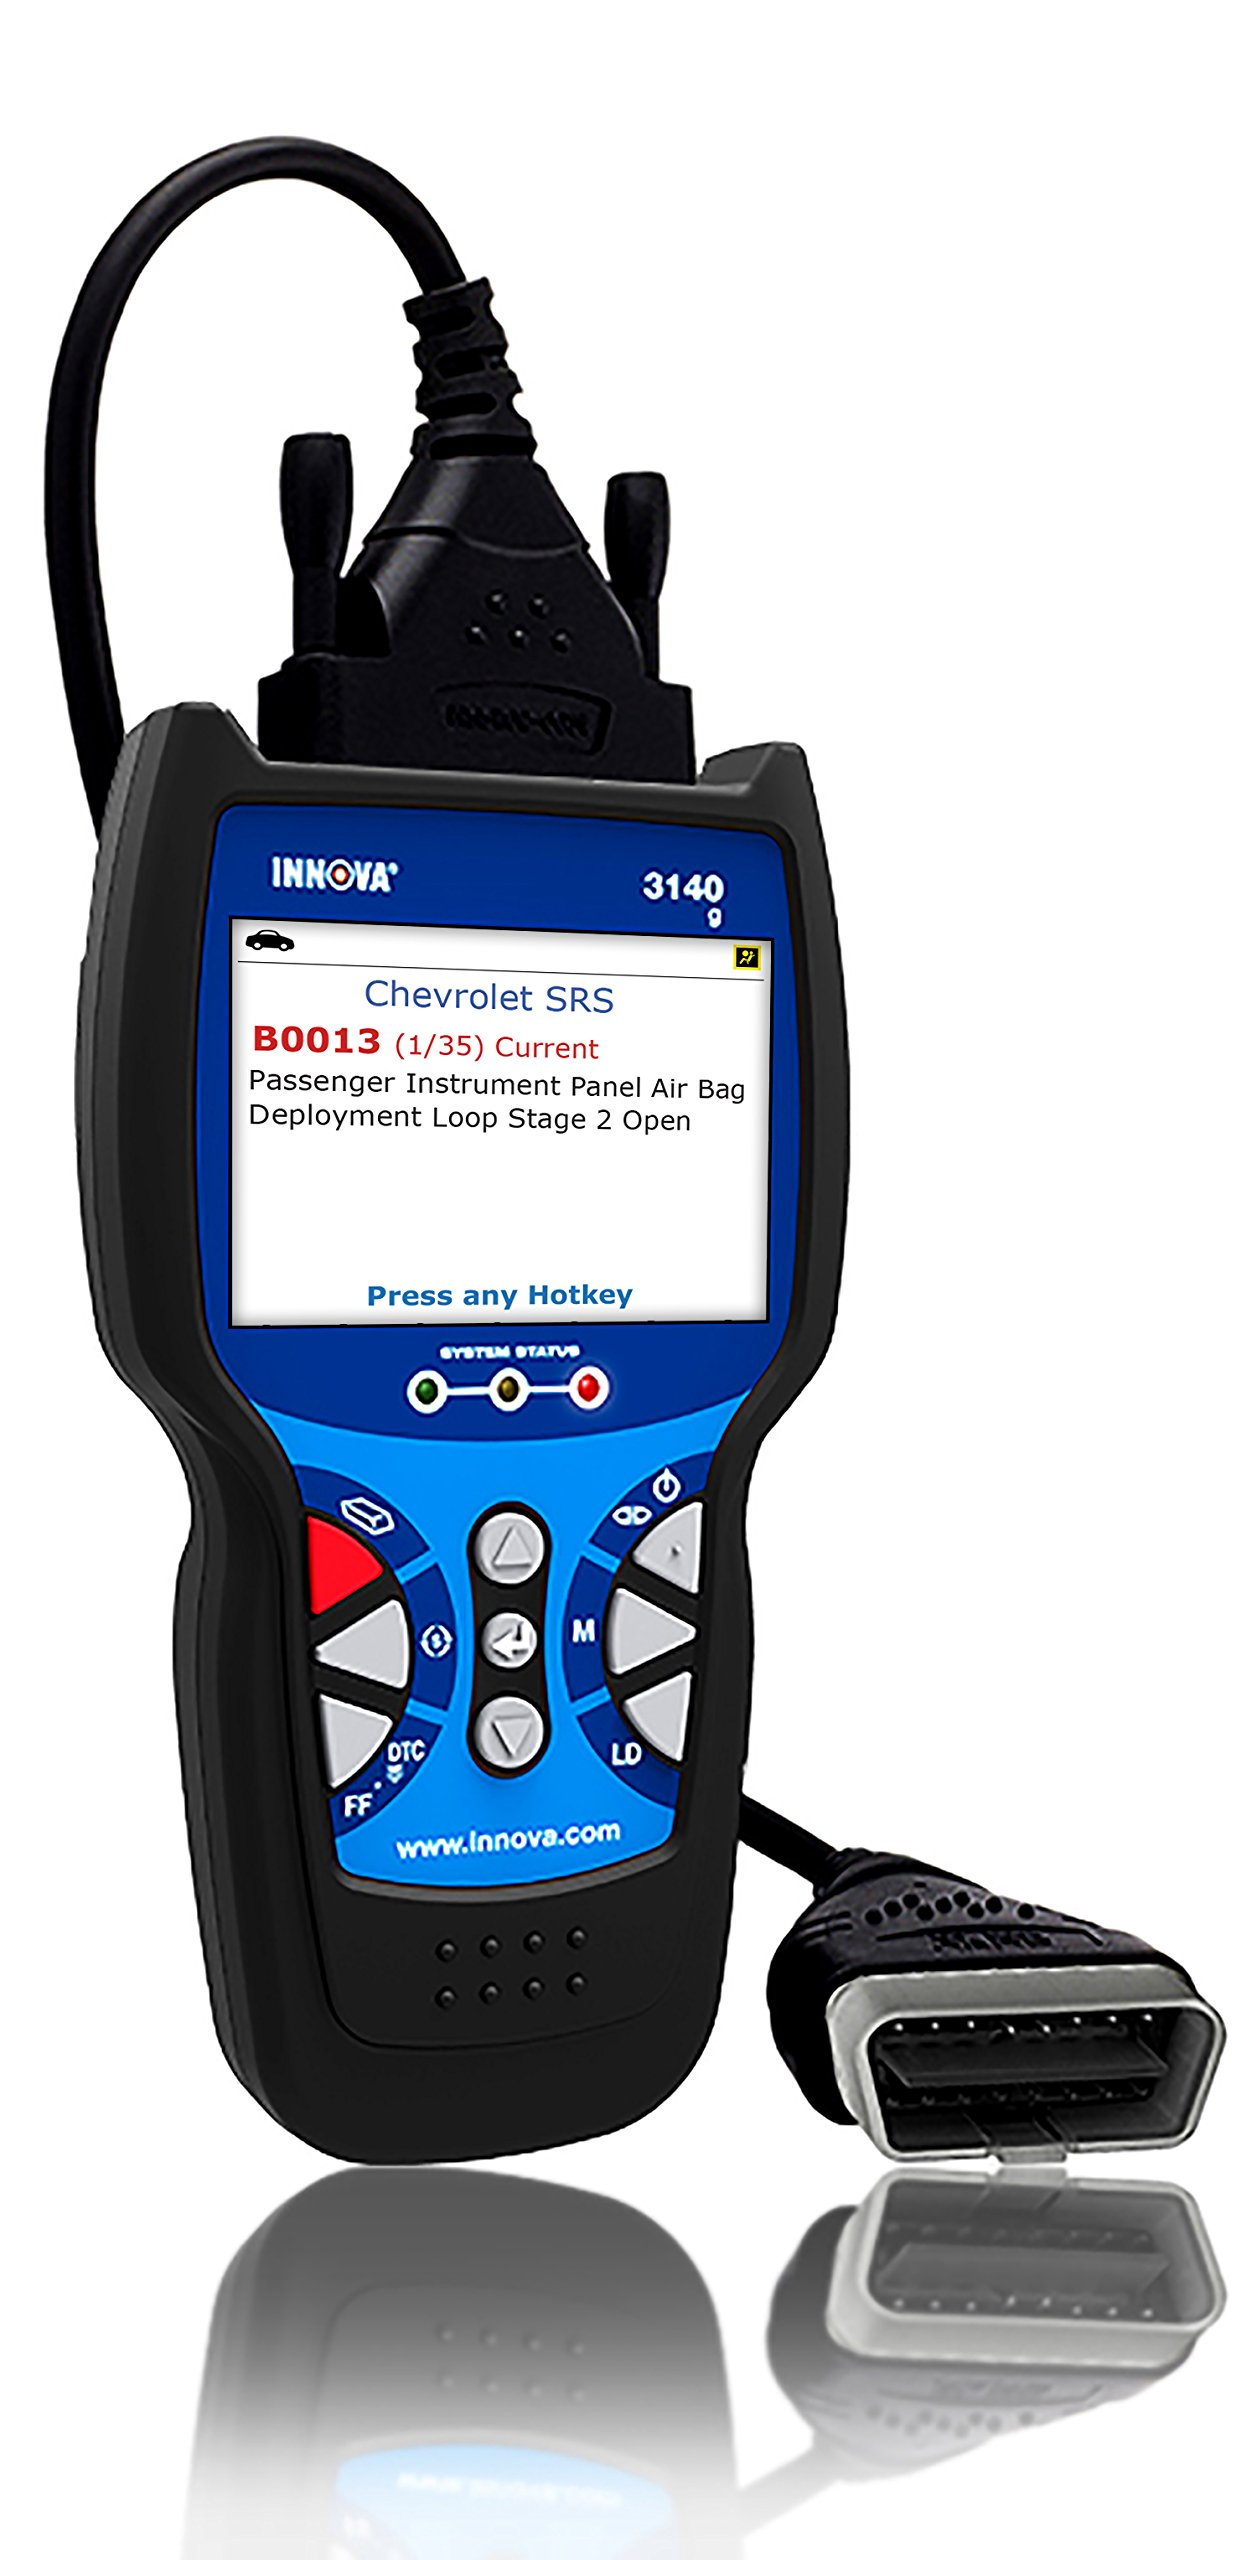 Innova 3140g Code Reader / Scan Tool with 3.5'' Display, ABS, Bluetooth, and Live Data for OBD2 Vehicles with OBD1 Coverage